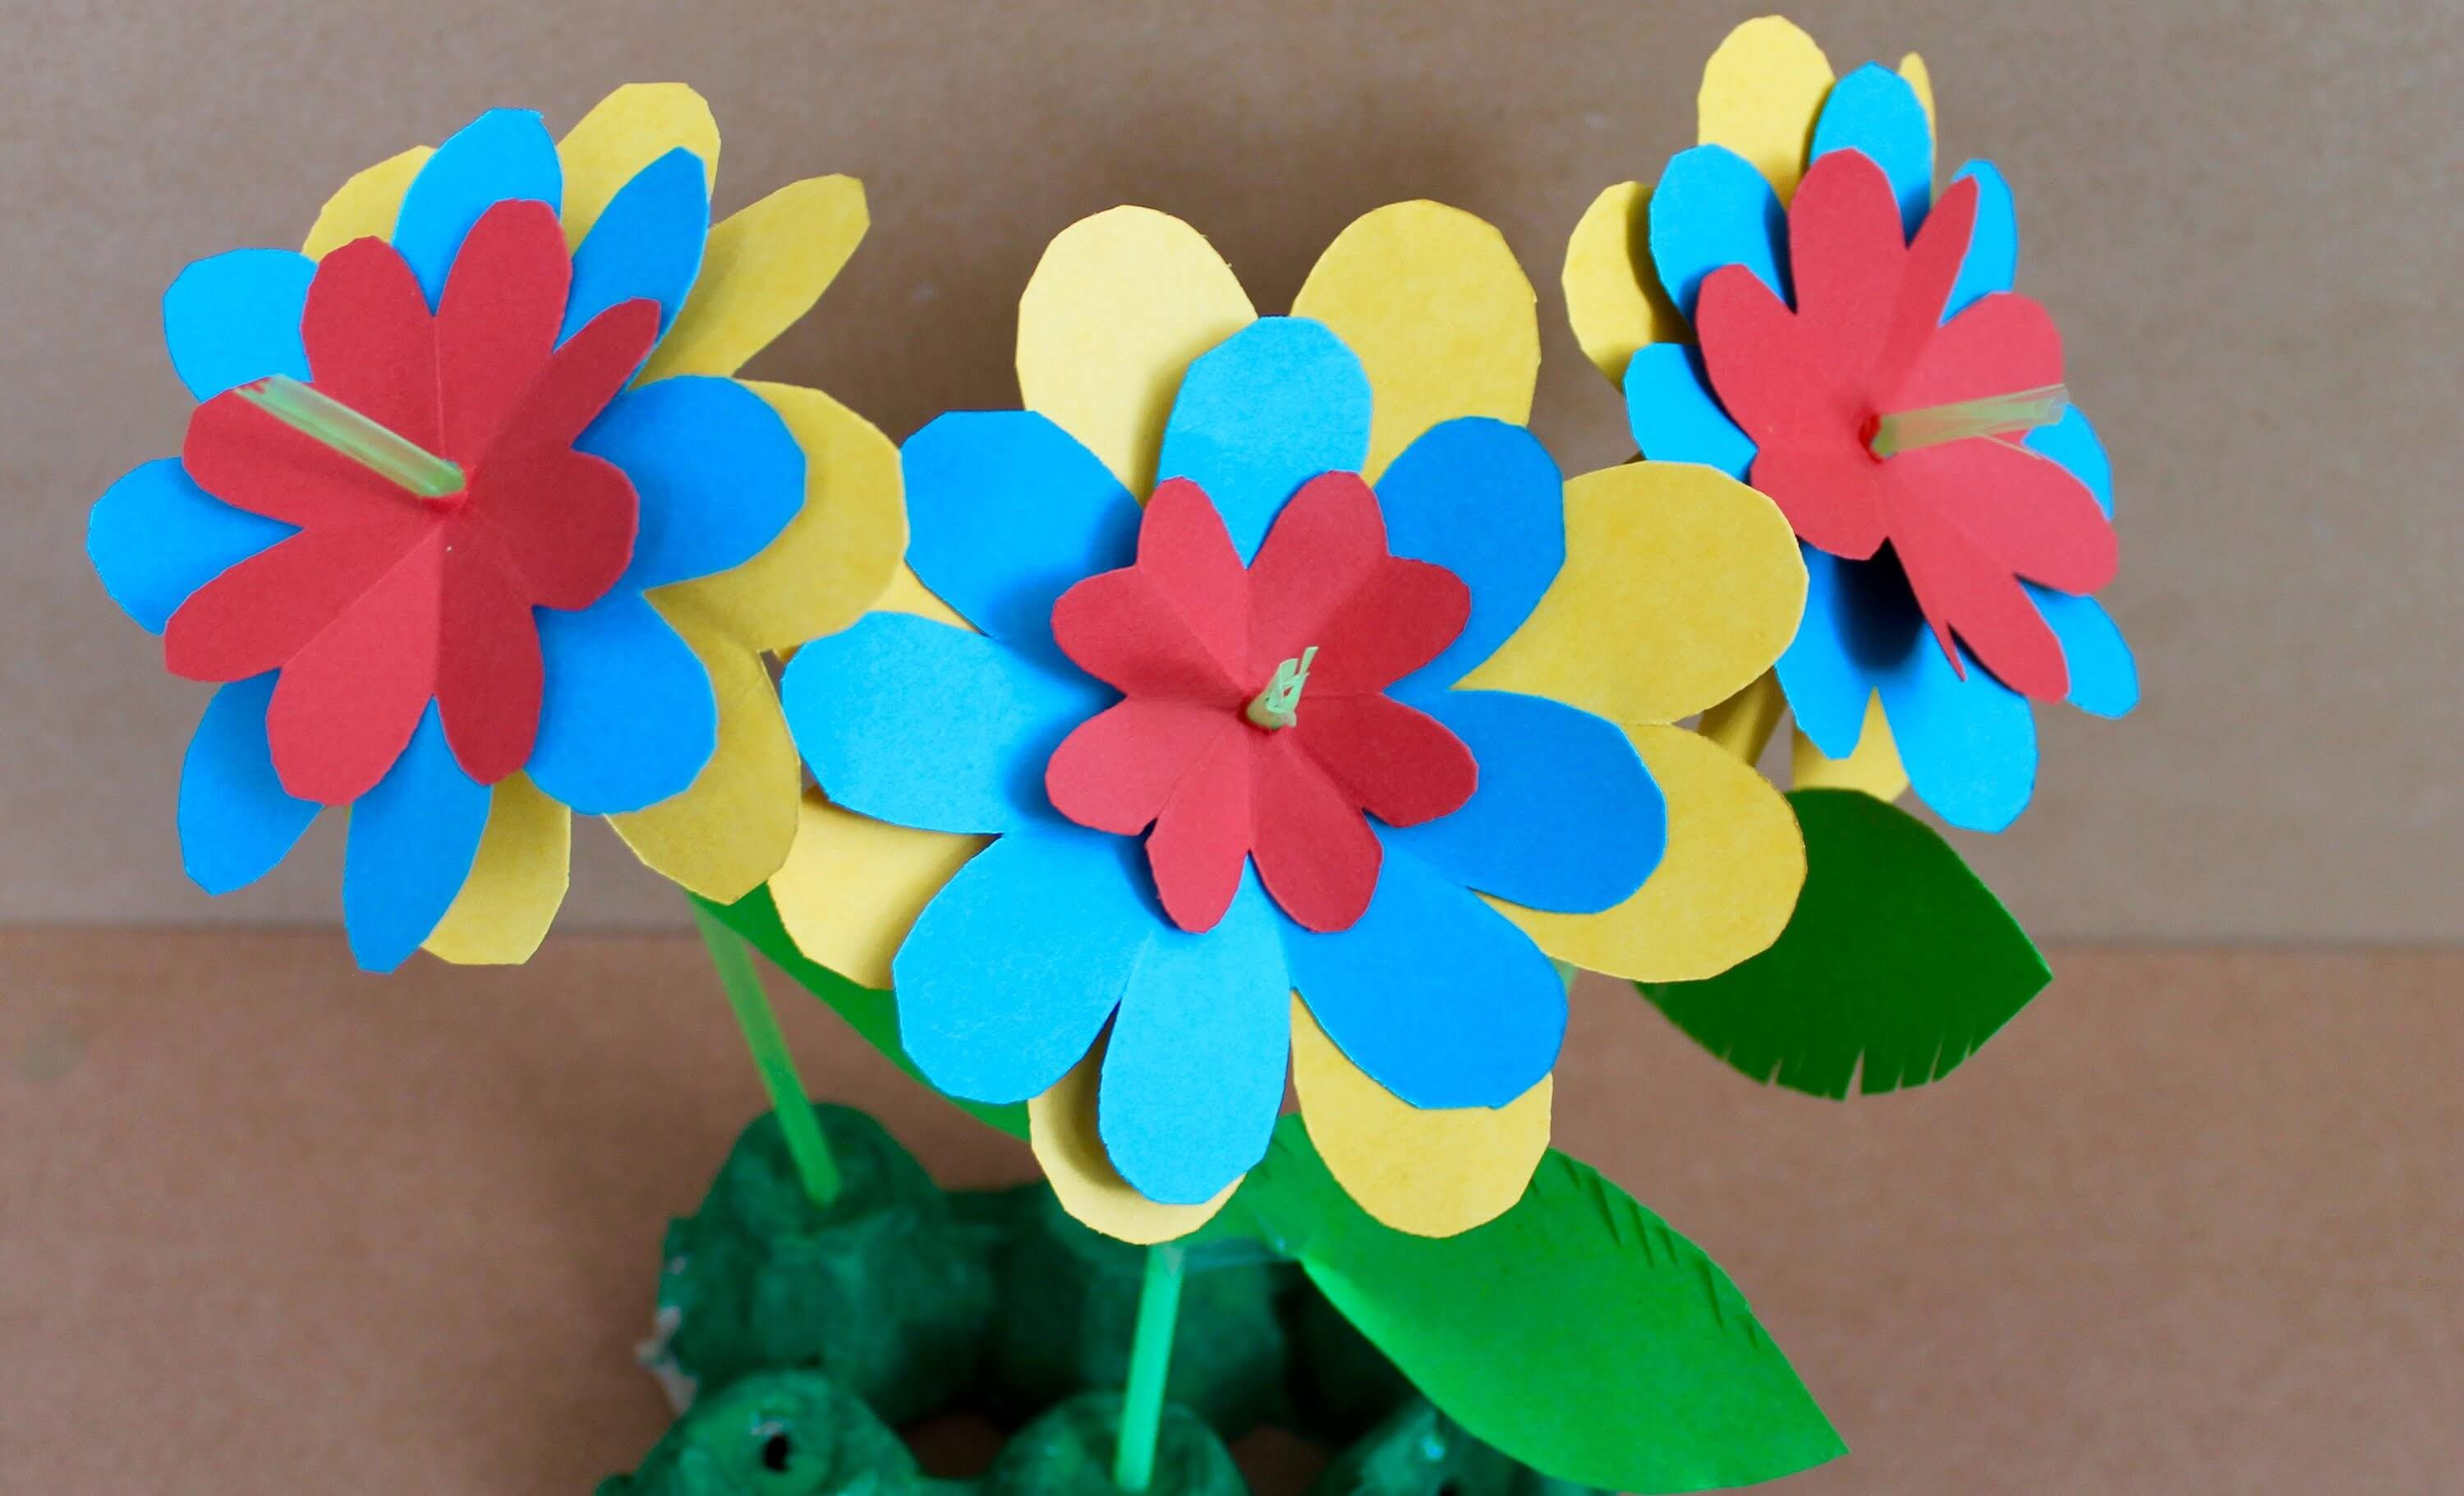 17 Simple Most Funny Diy Paper Crafts For Kids Try It Today